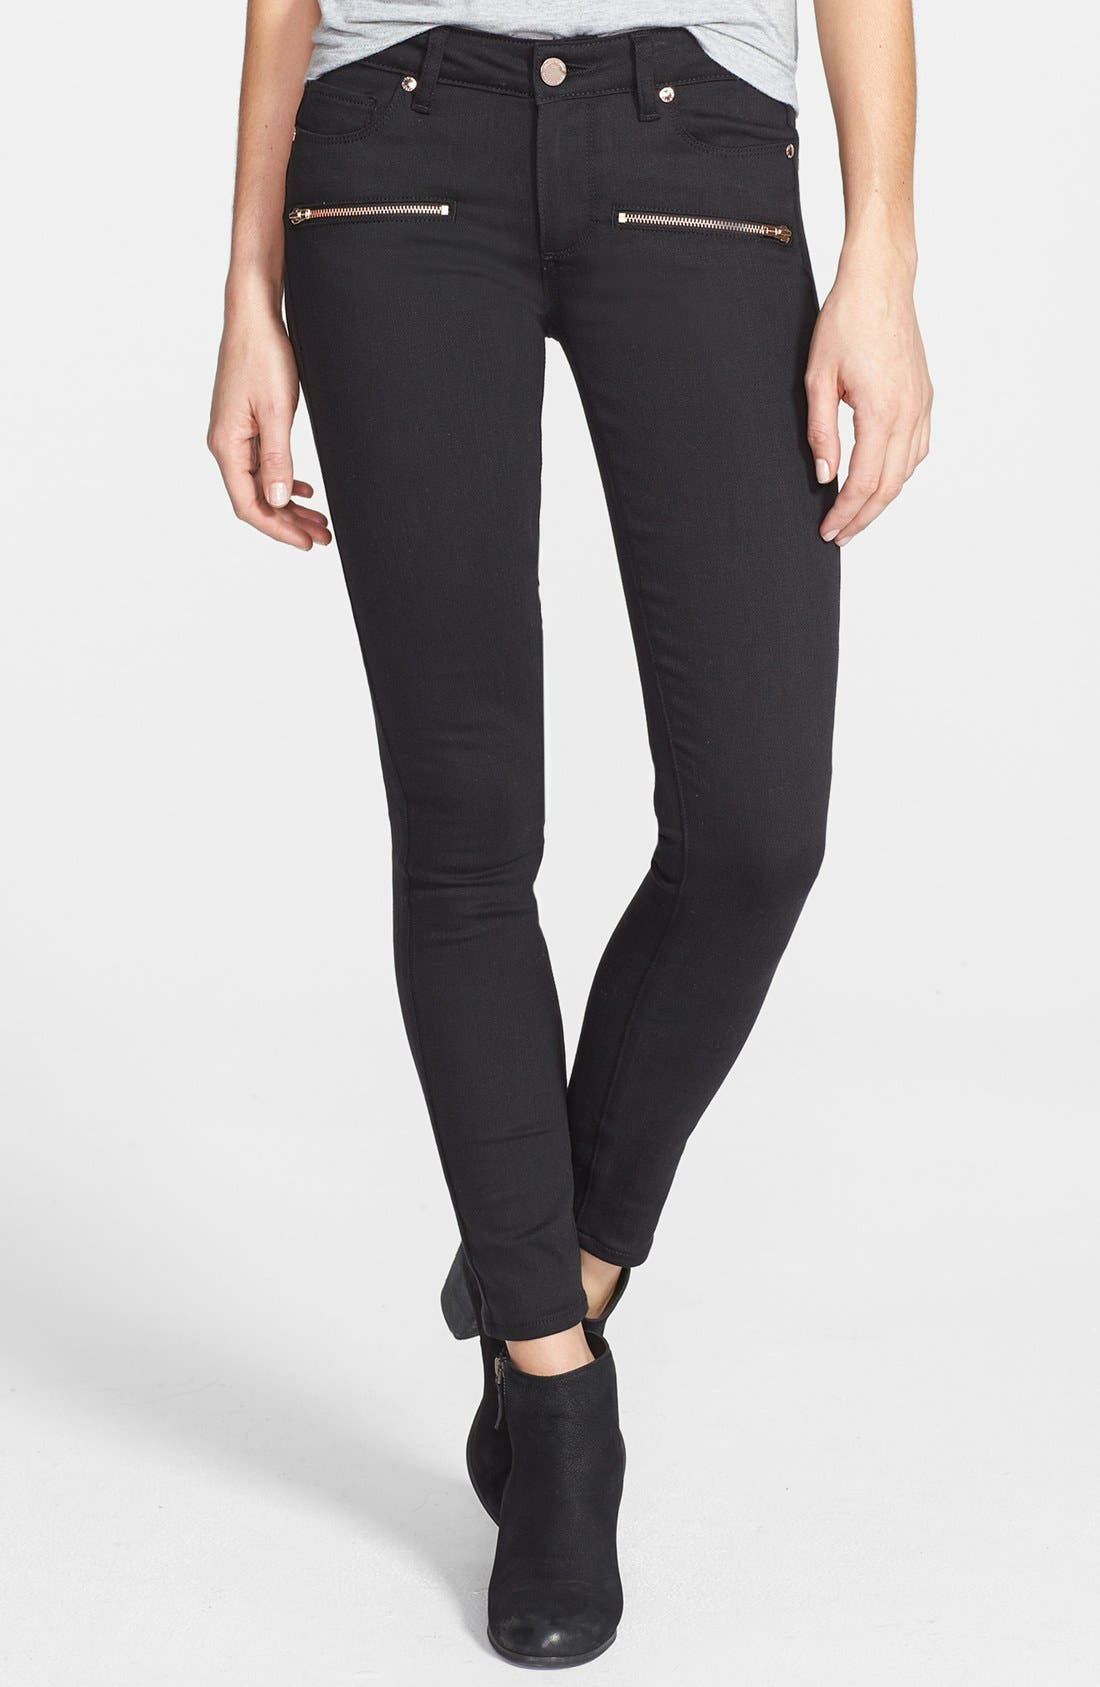 Alternate Image 1 Selected - Paige Denim 'Indio' Zip Detail Ultra Skinny Jeans (Steel Grey)